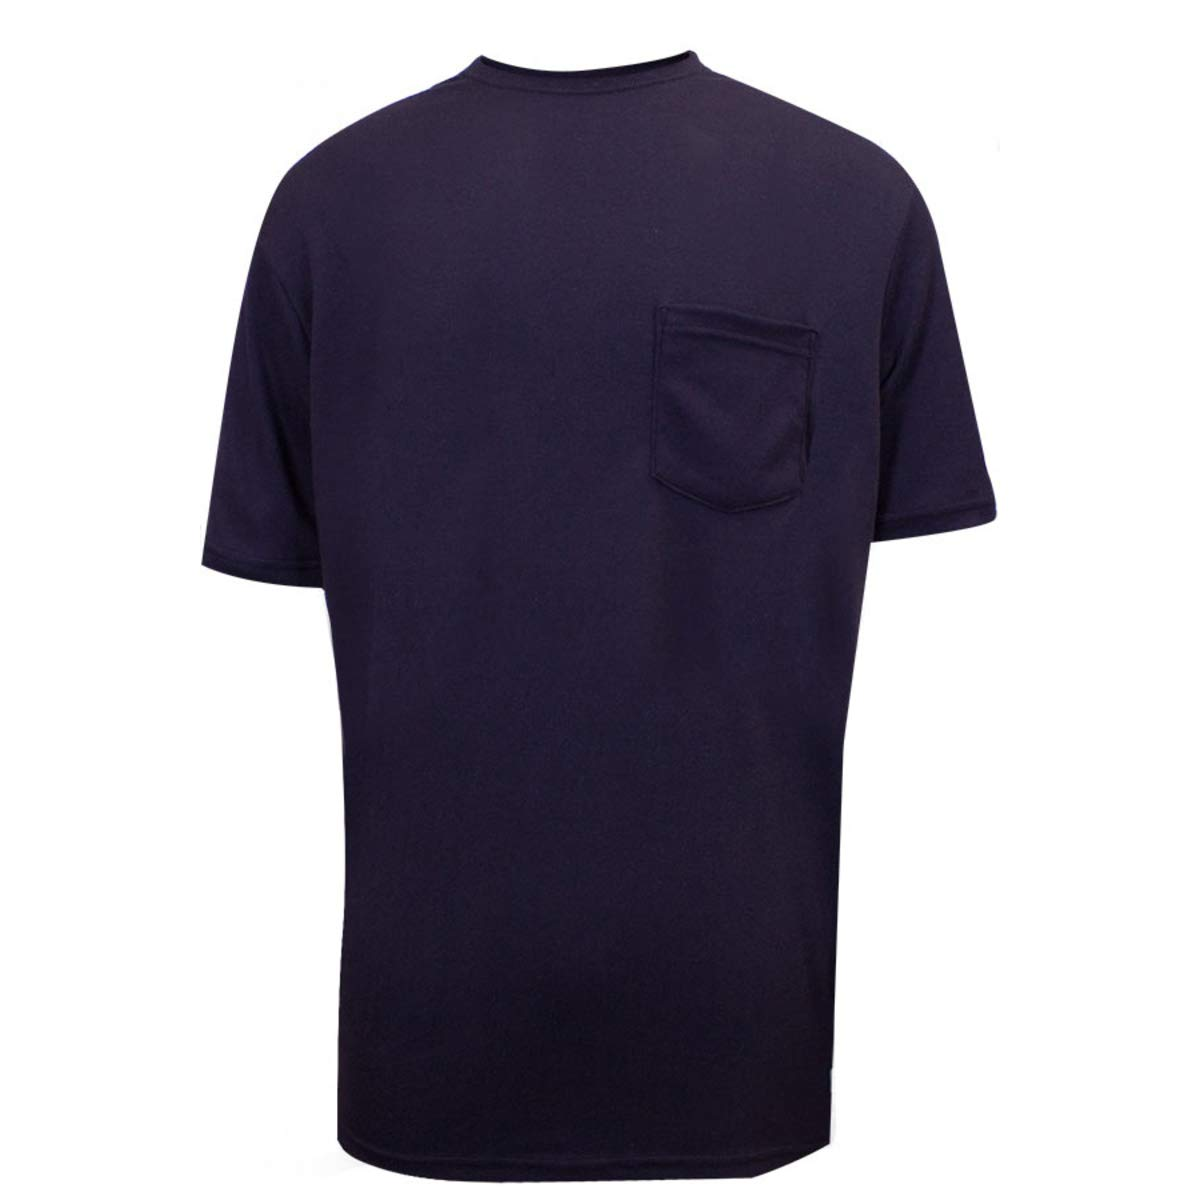 National Safety Apparel Small Navy Classic Cotton 12 cal/cm Flame Resistant T-Shirt by NATIONAL SAFETY APPAREL INC (Image #1)